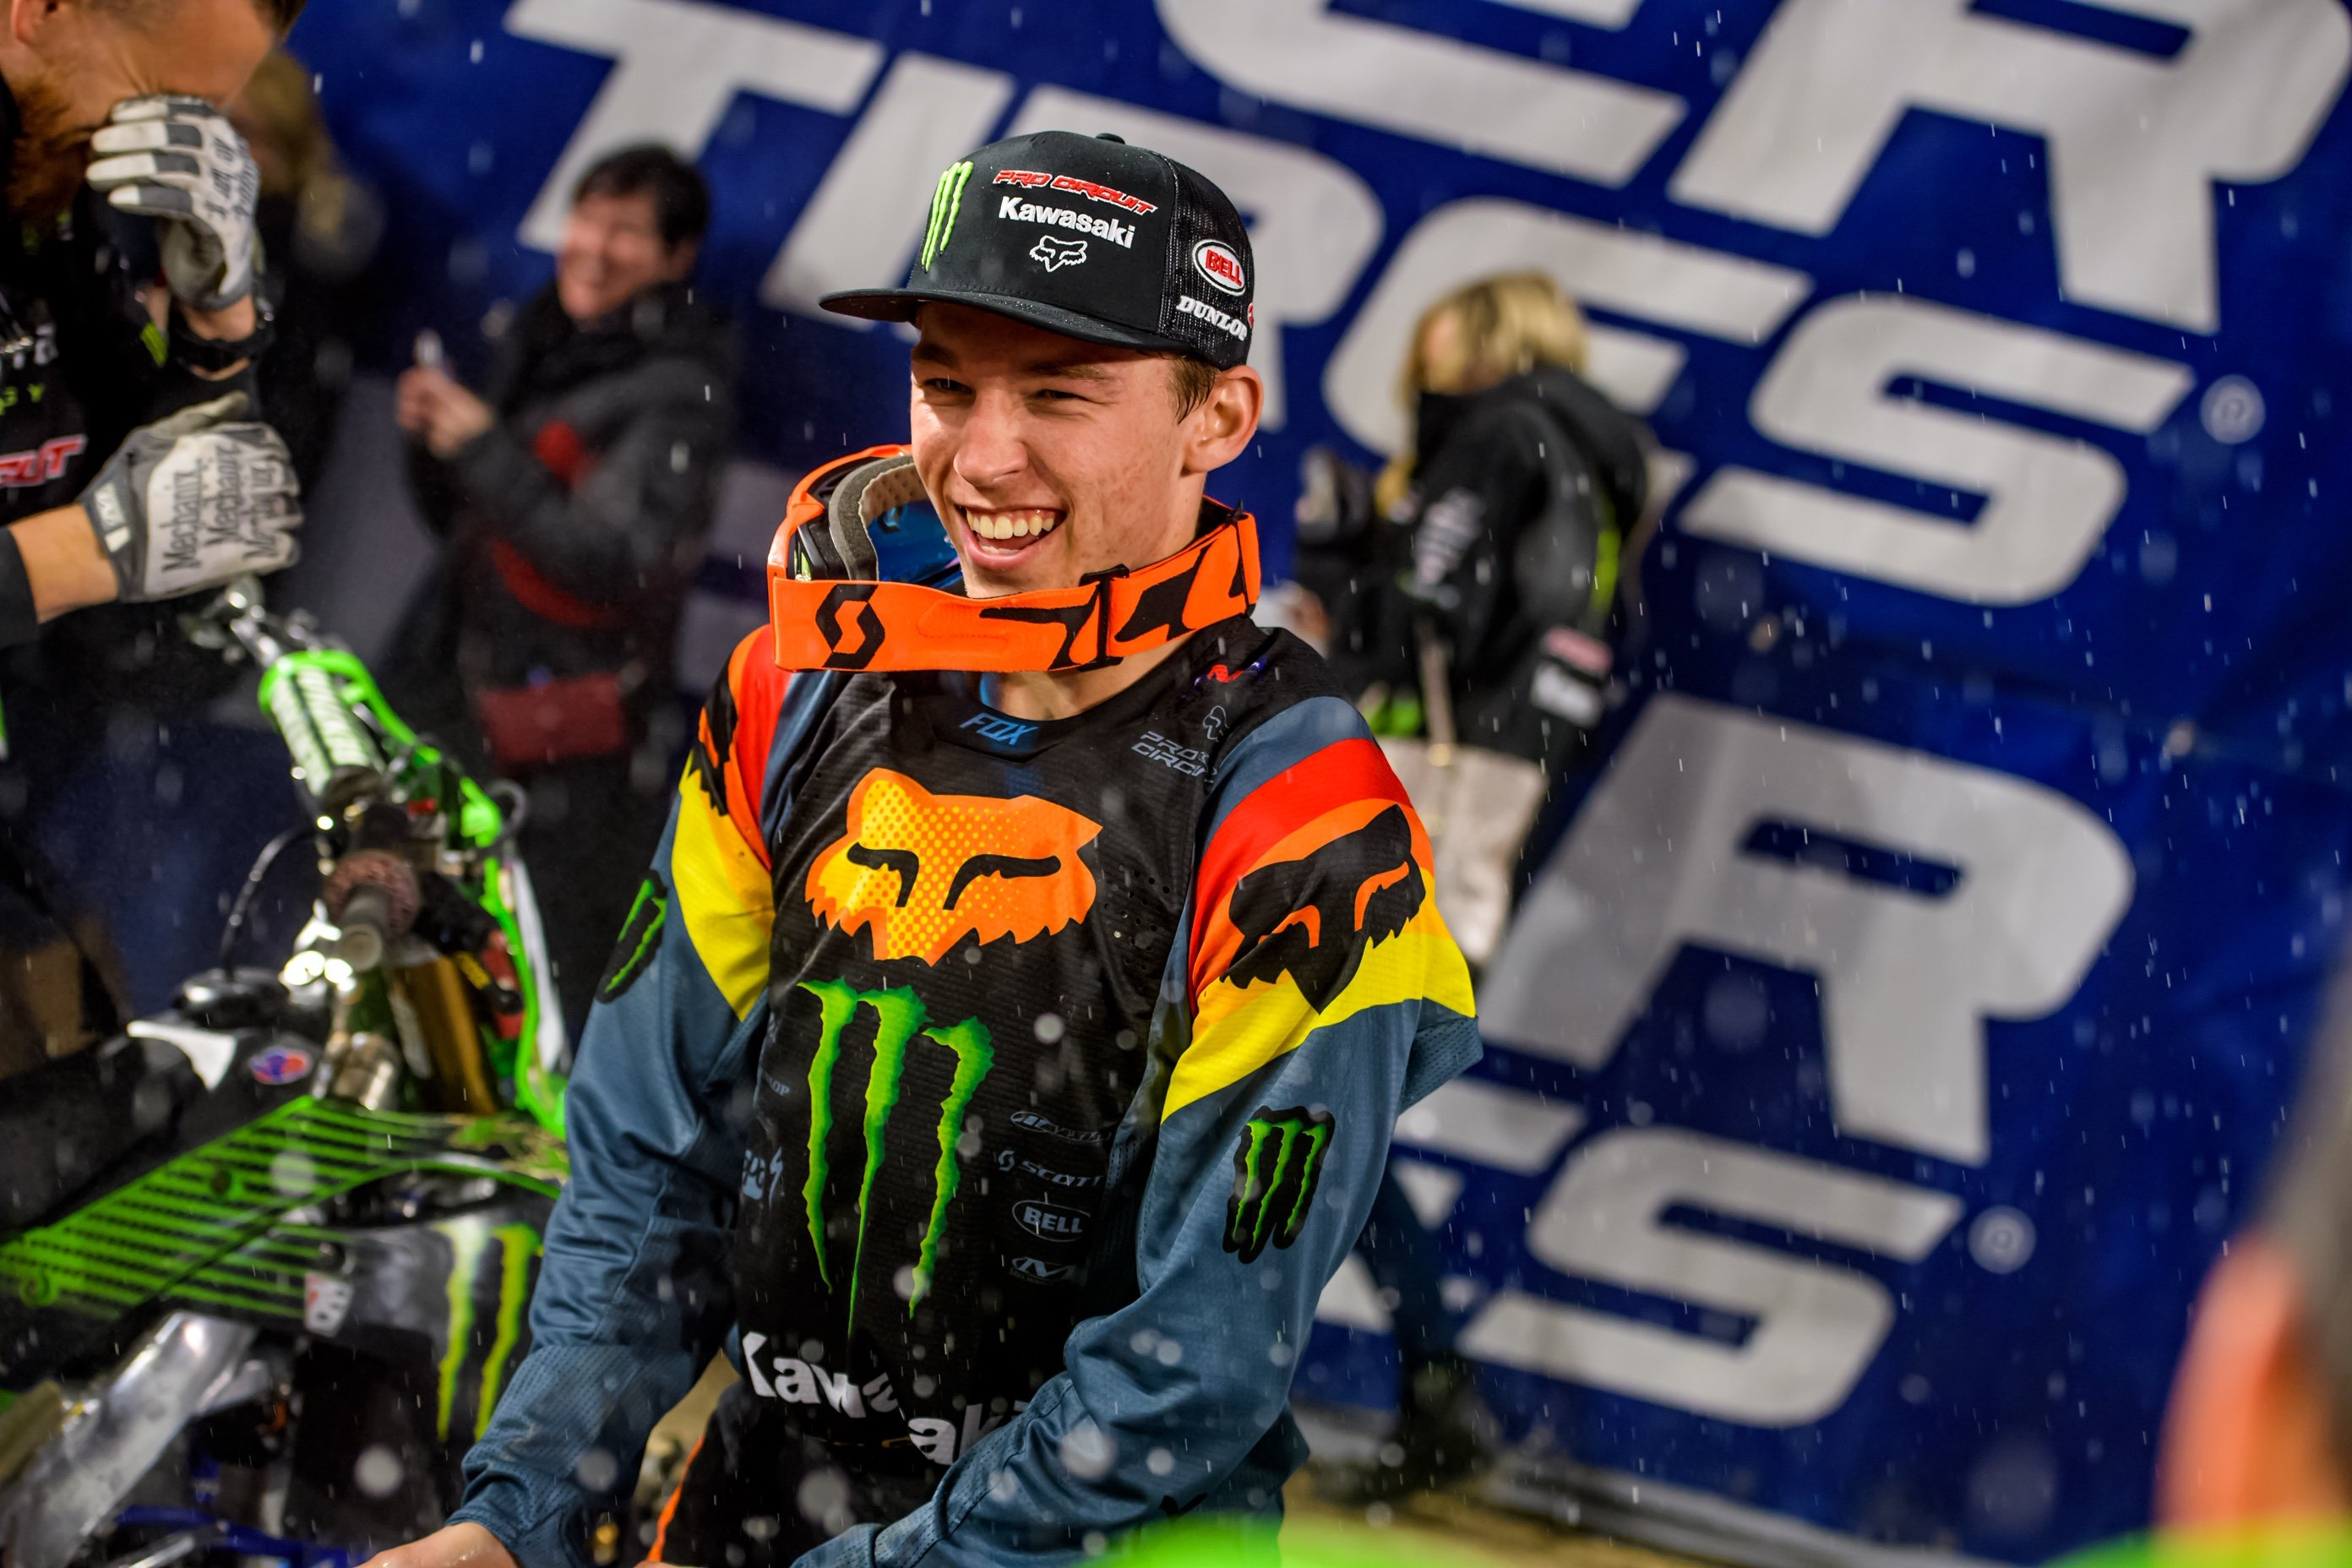 Austin Forkner Wins Opening Round of 250SX Eastern Regional